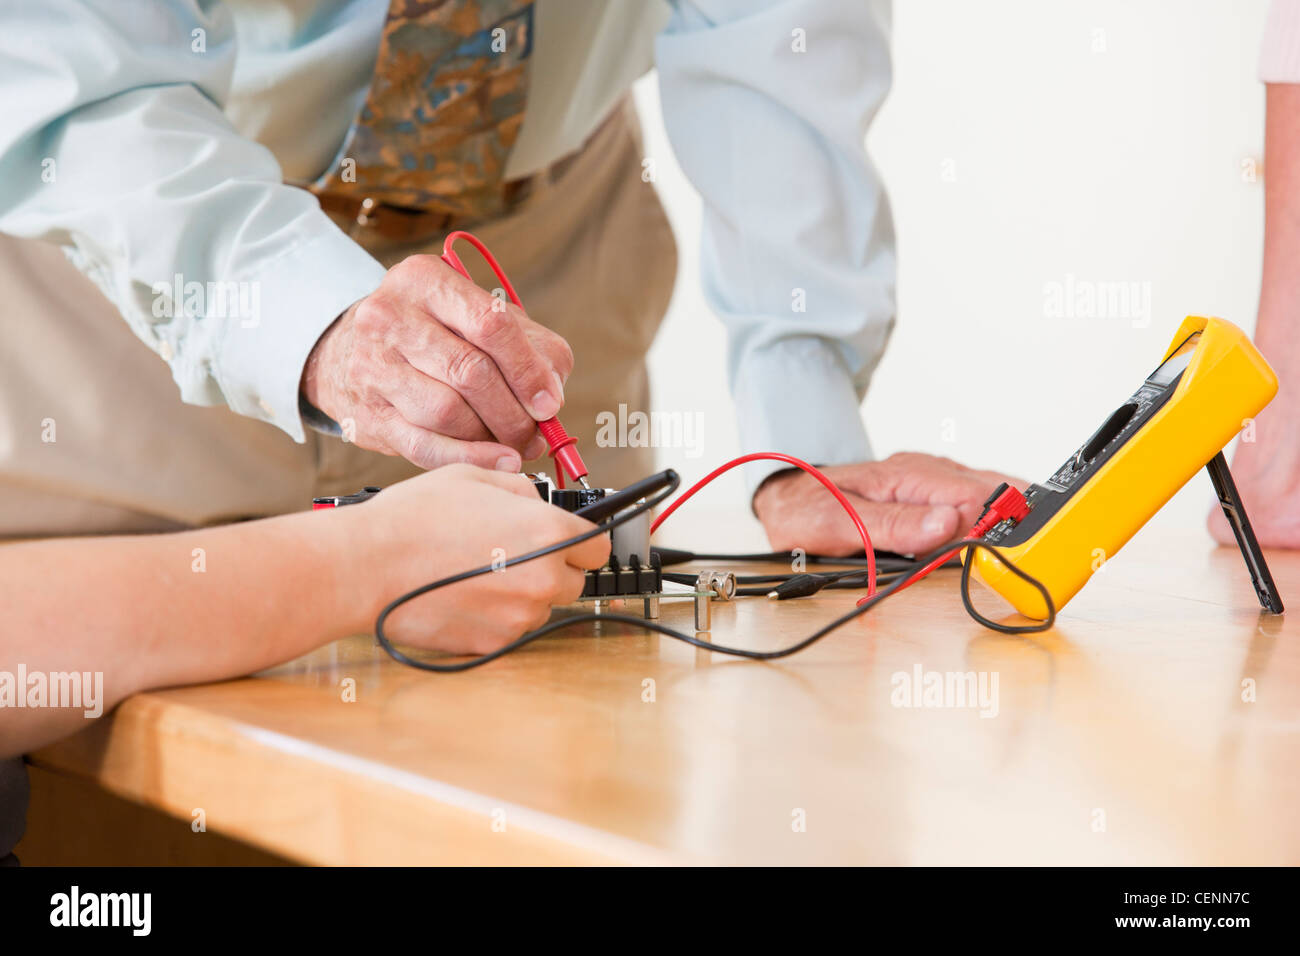 Engineering professor assisting student with multimeter measurement on circuit board - Stock Image